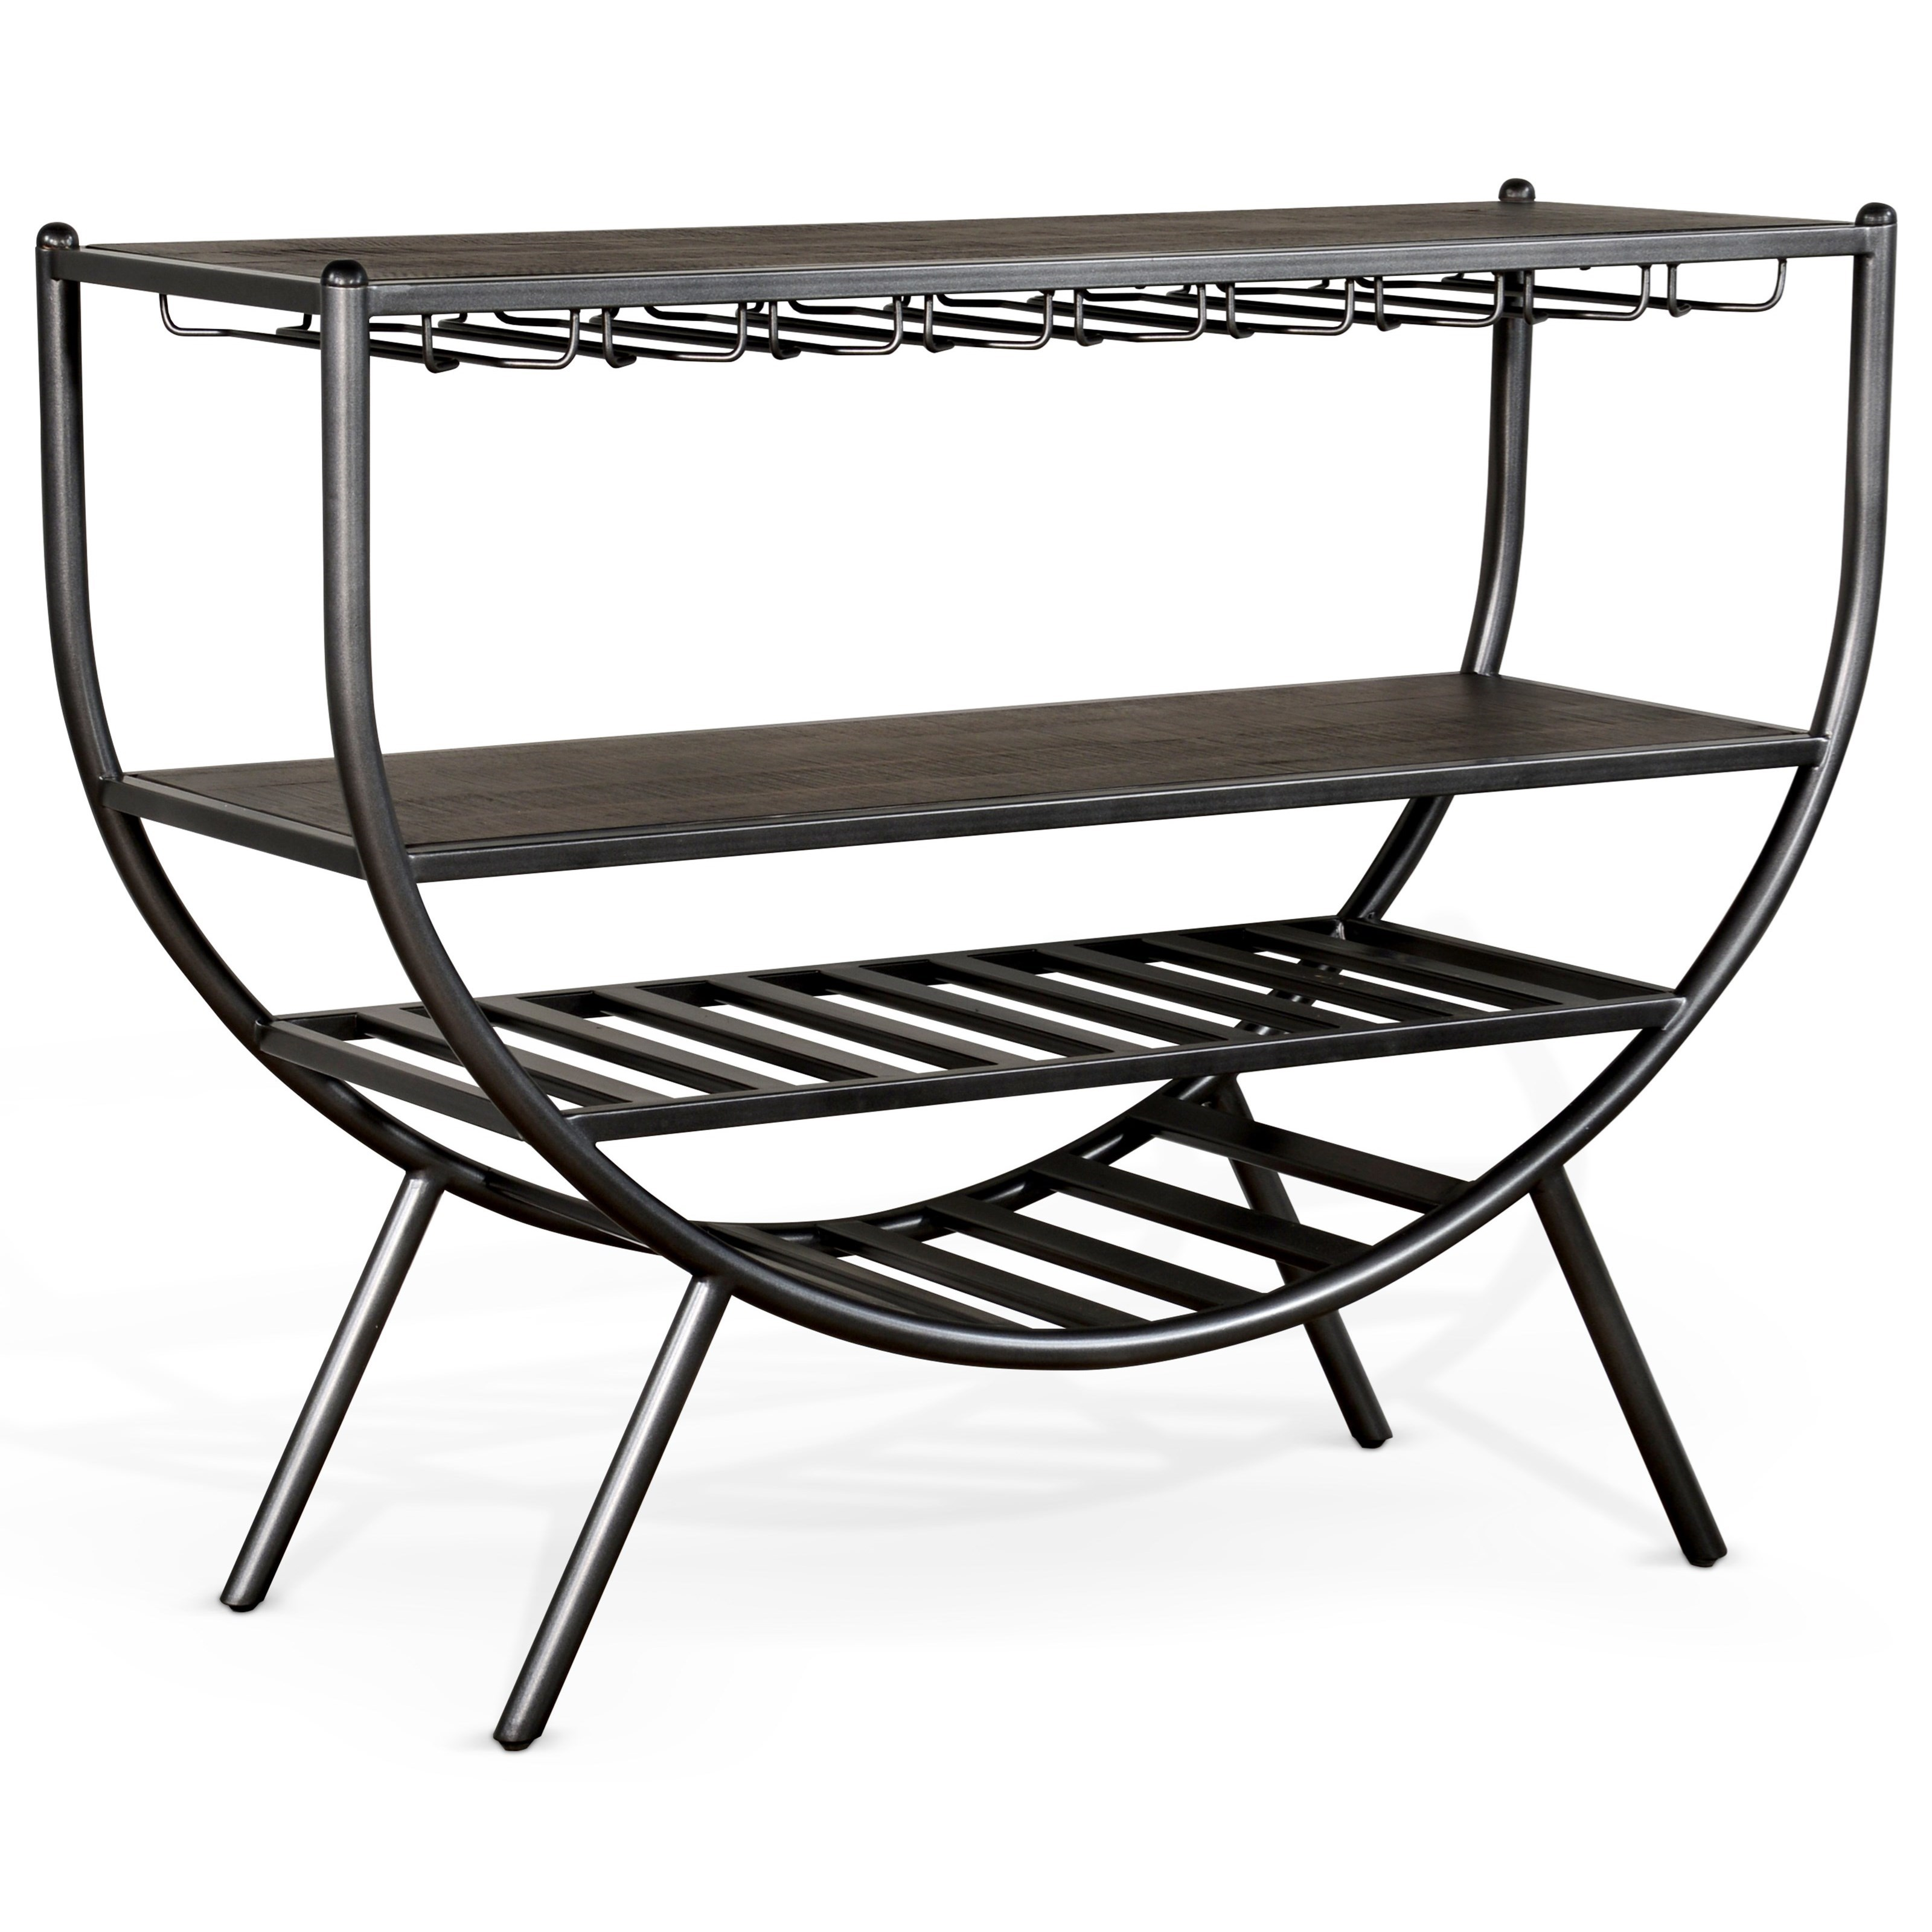 Homestead 2 Wine Rack Server by Sunny Designs at Home Furnishings Direct